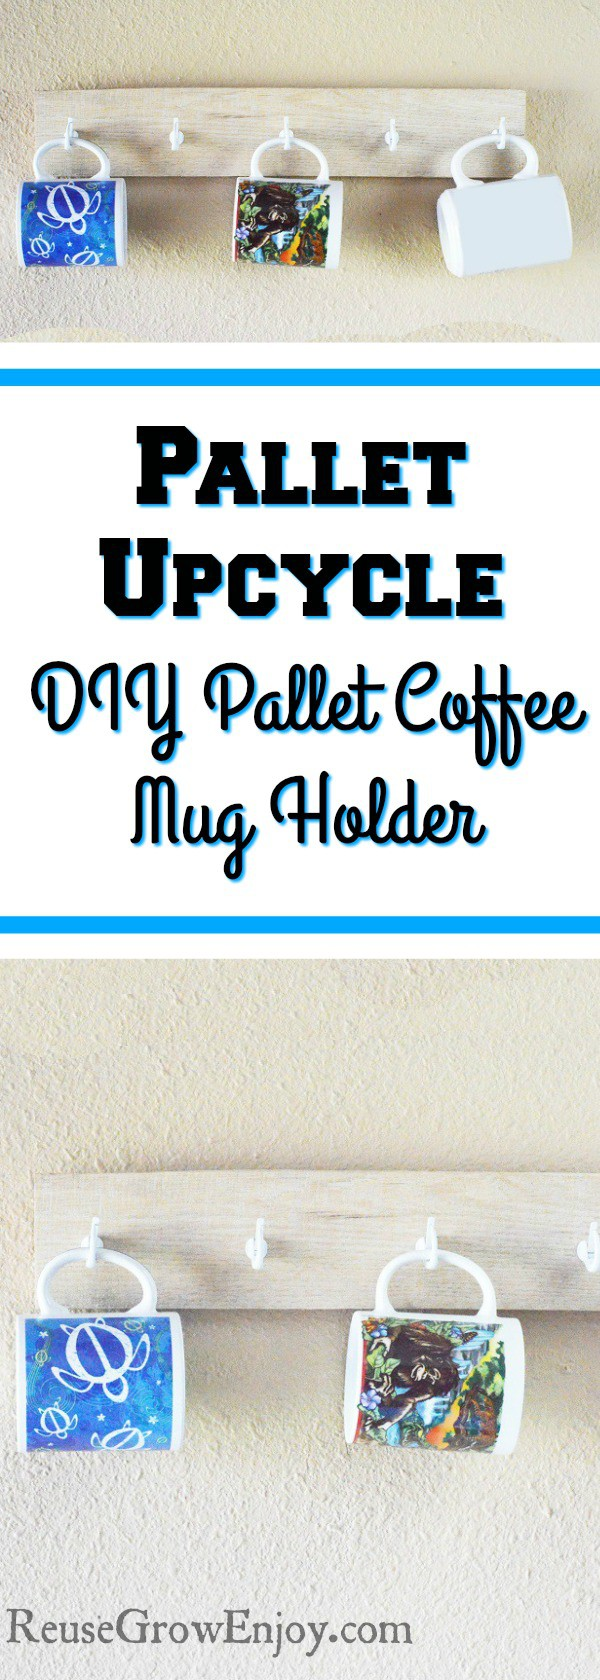 Looking for a pallet upcycle project to do? Check out this pretty easy DIY pallet coffee mug holder! Only takes a few minutes to make.